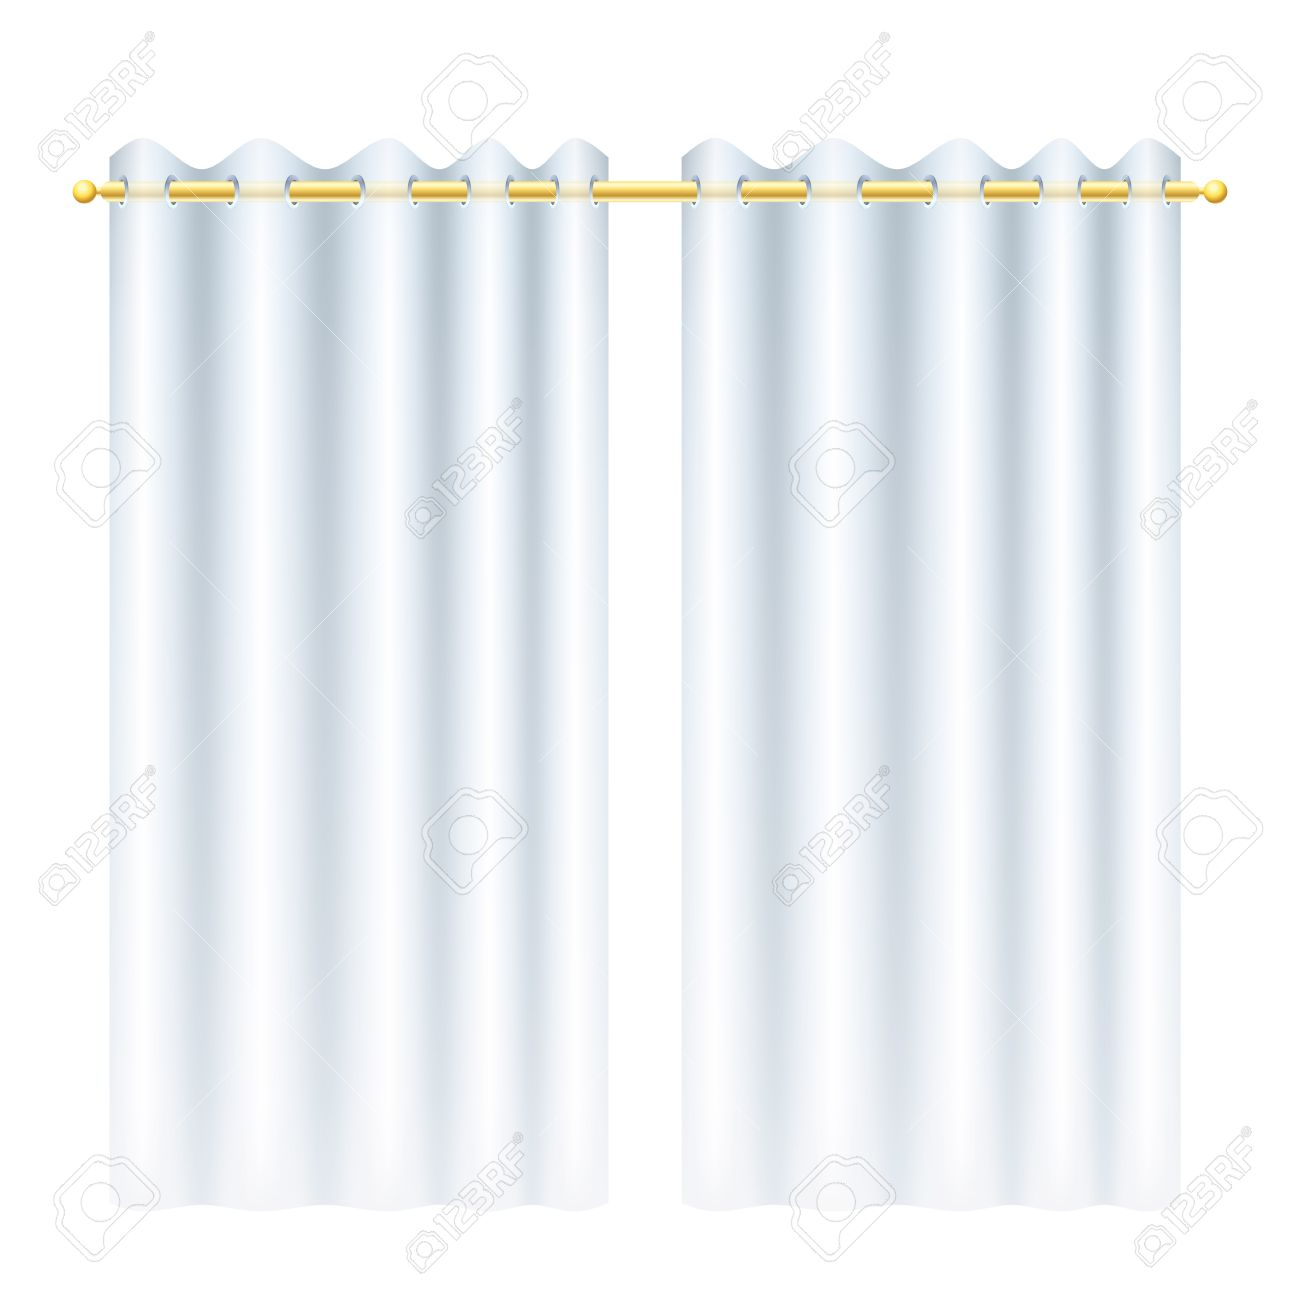 Royalty free or white curtain background drapes royalty free stock - White Curtains With Transparency Blindes On Golden Drapery Rod Stock Vector 35534184